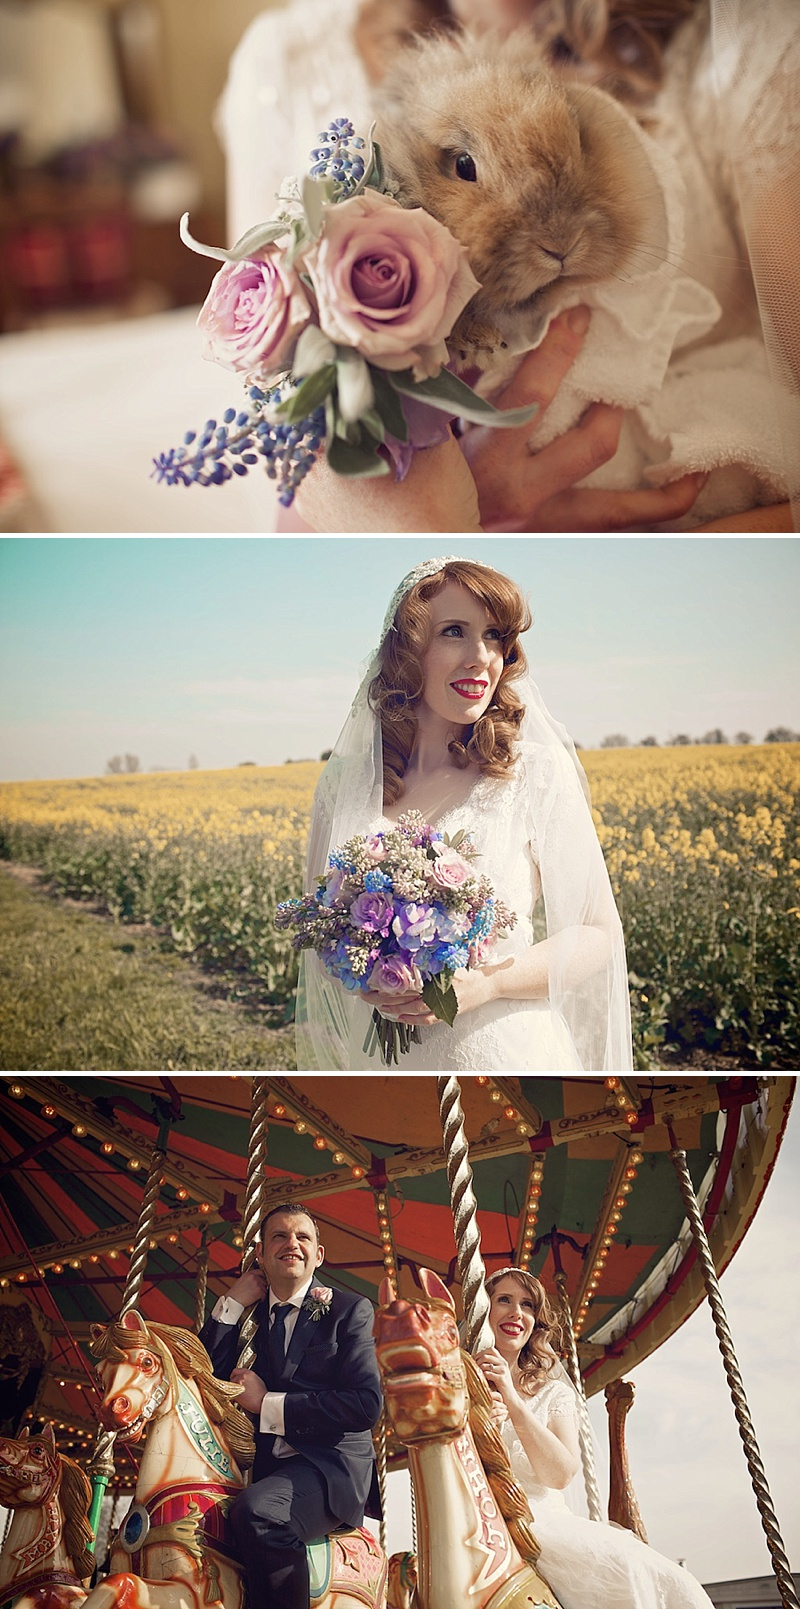 Vintage Wedding Inspired By The Carousel Scene From Mary Poppins With A Mint Green, Lavender And Gold Colour Scheme With Bride In Gala By Cymbeline With Rachel Simpson Shoes 1